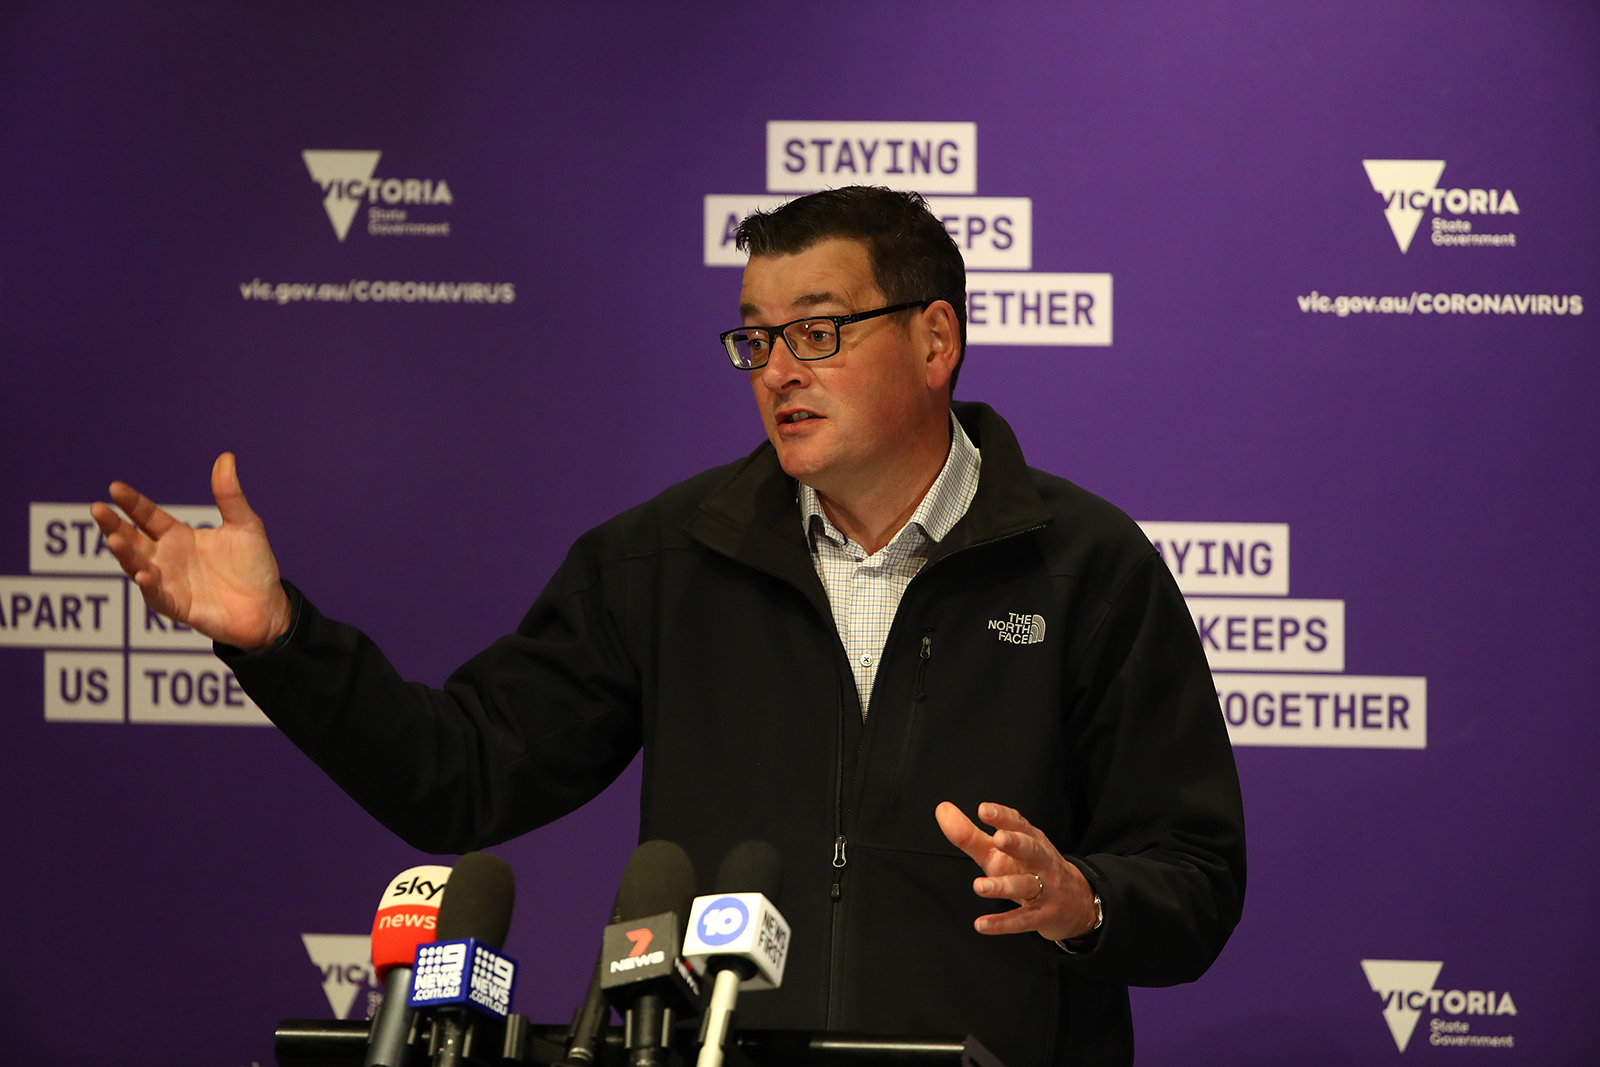 Victorian Premier Daniel Andrews speaks to the media during a press conference on July 15, in Melbourne.